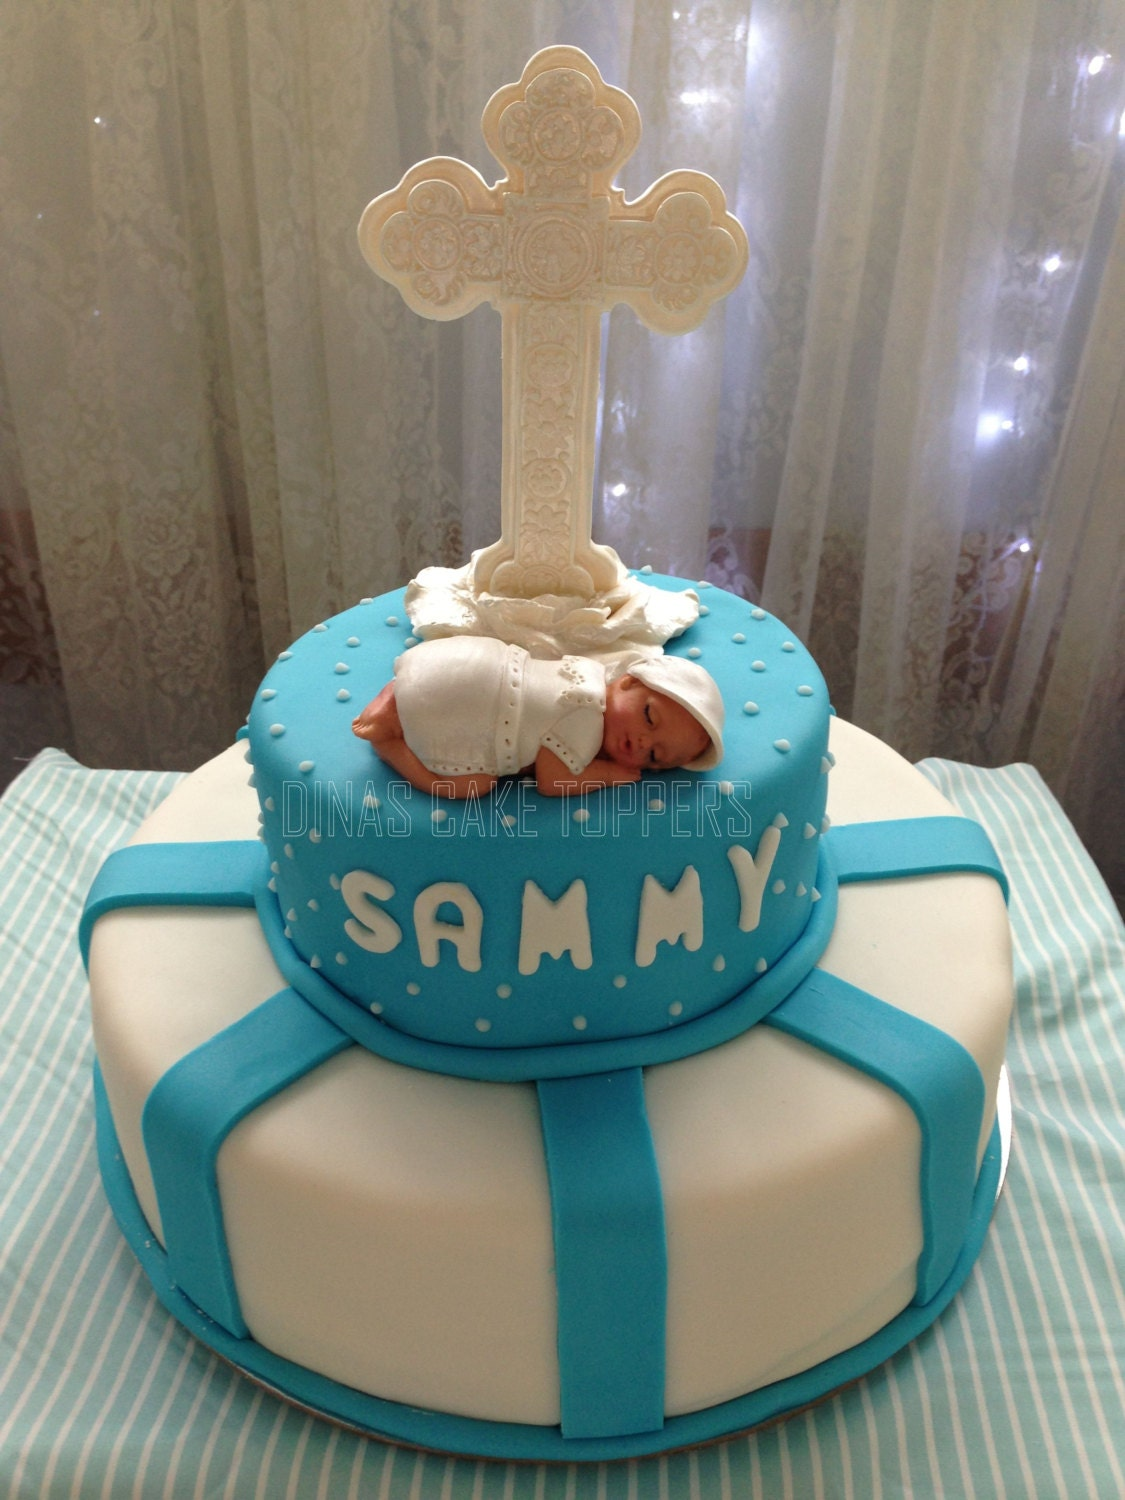 Christening Cake Toppers Baby Boy : Items similar to Boy Baptism Christening Baby Cake Topper ...